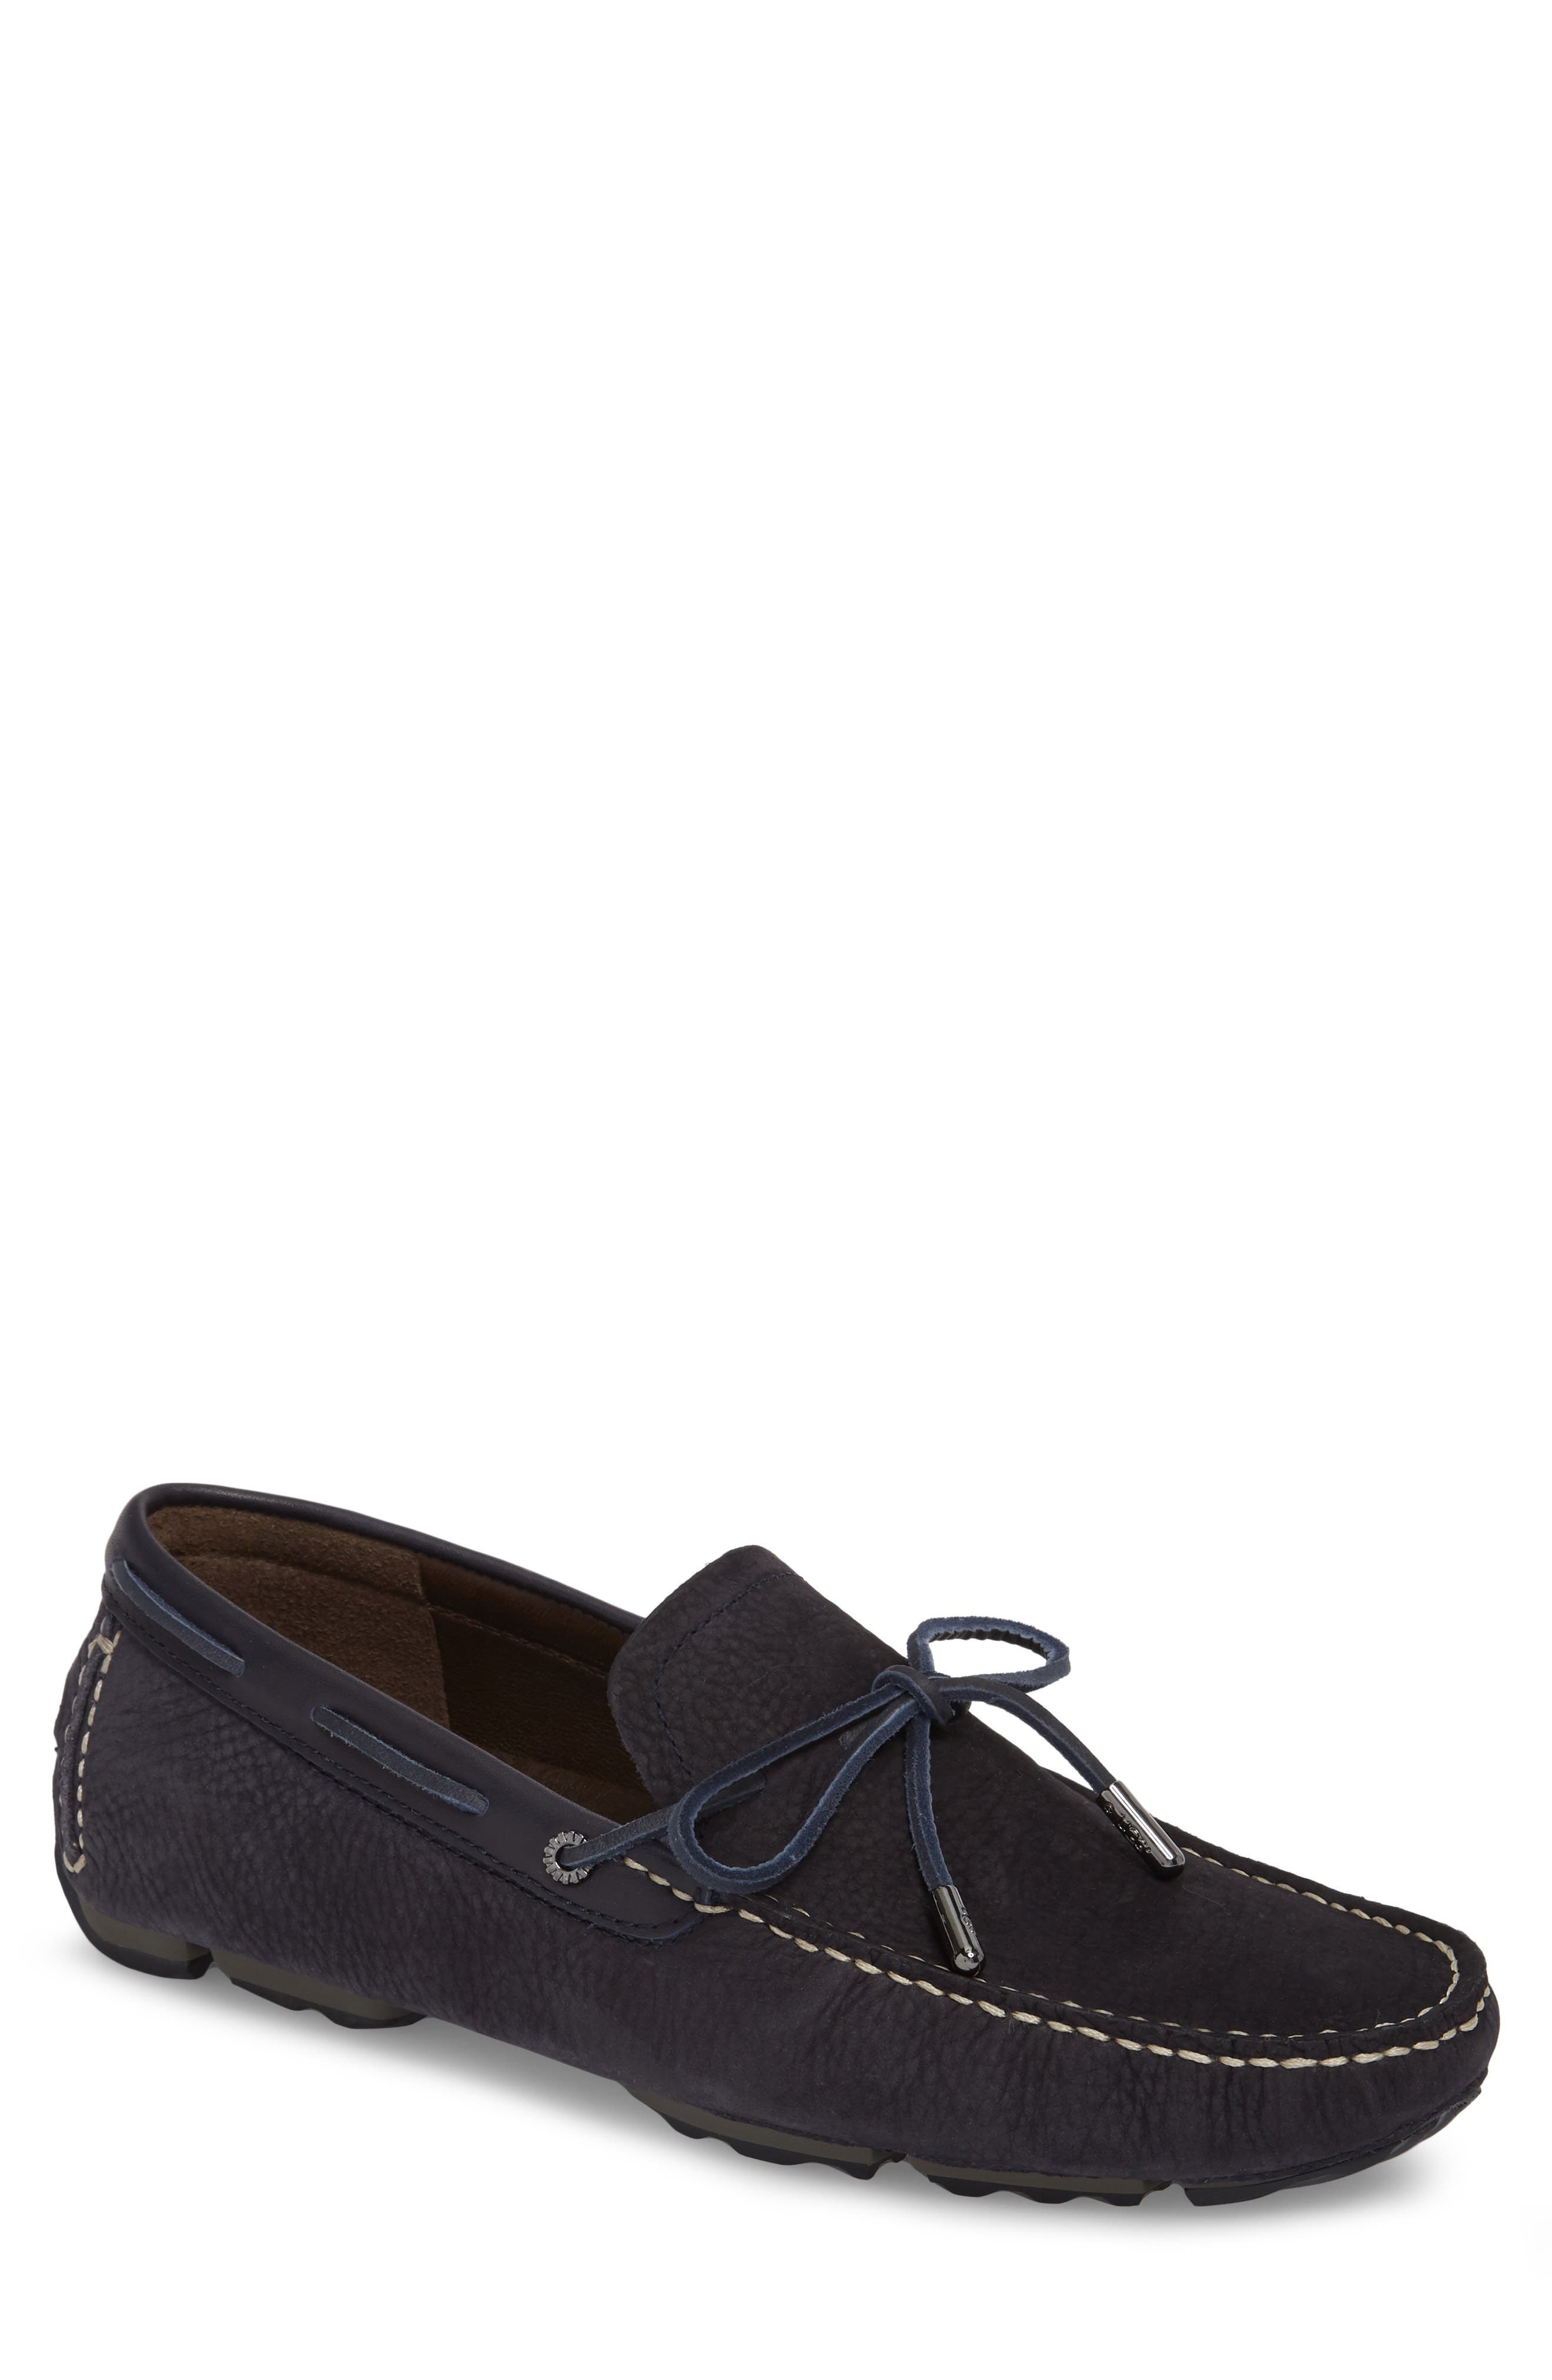 Bel Air Driving Moccasin,                             Main thumbnail 1, color,                             Navy Leather